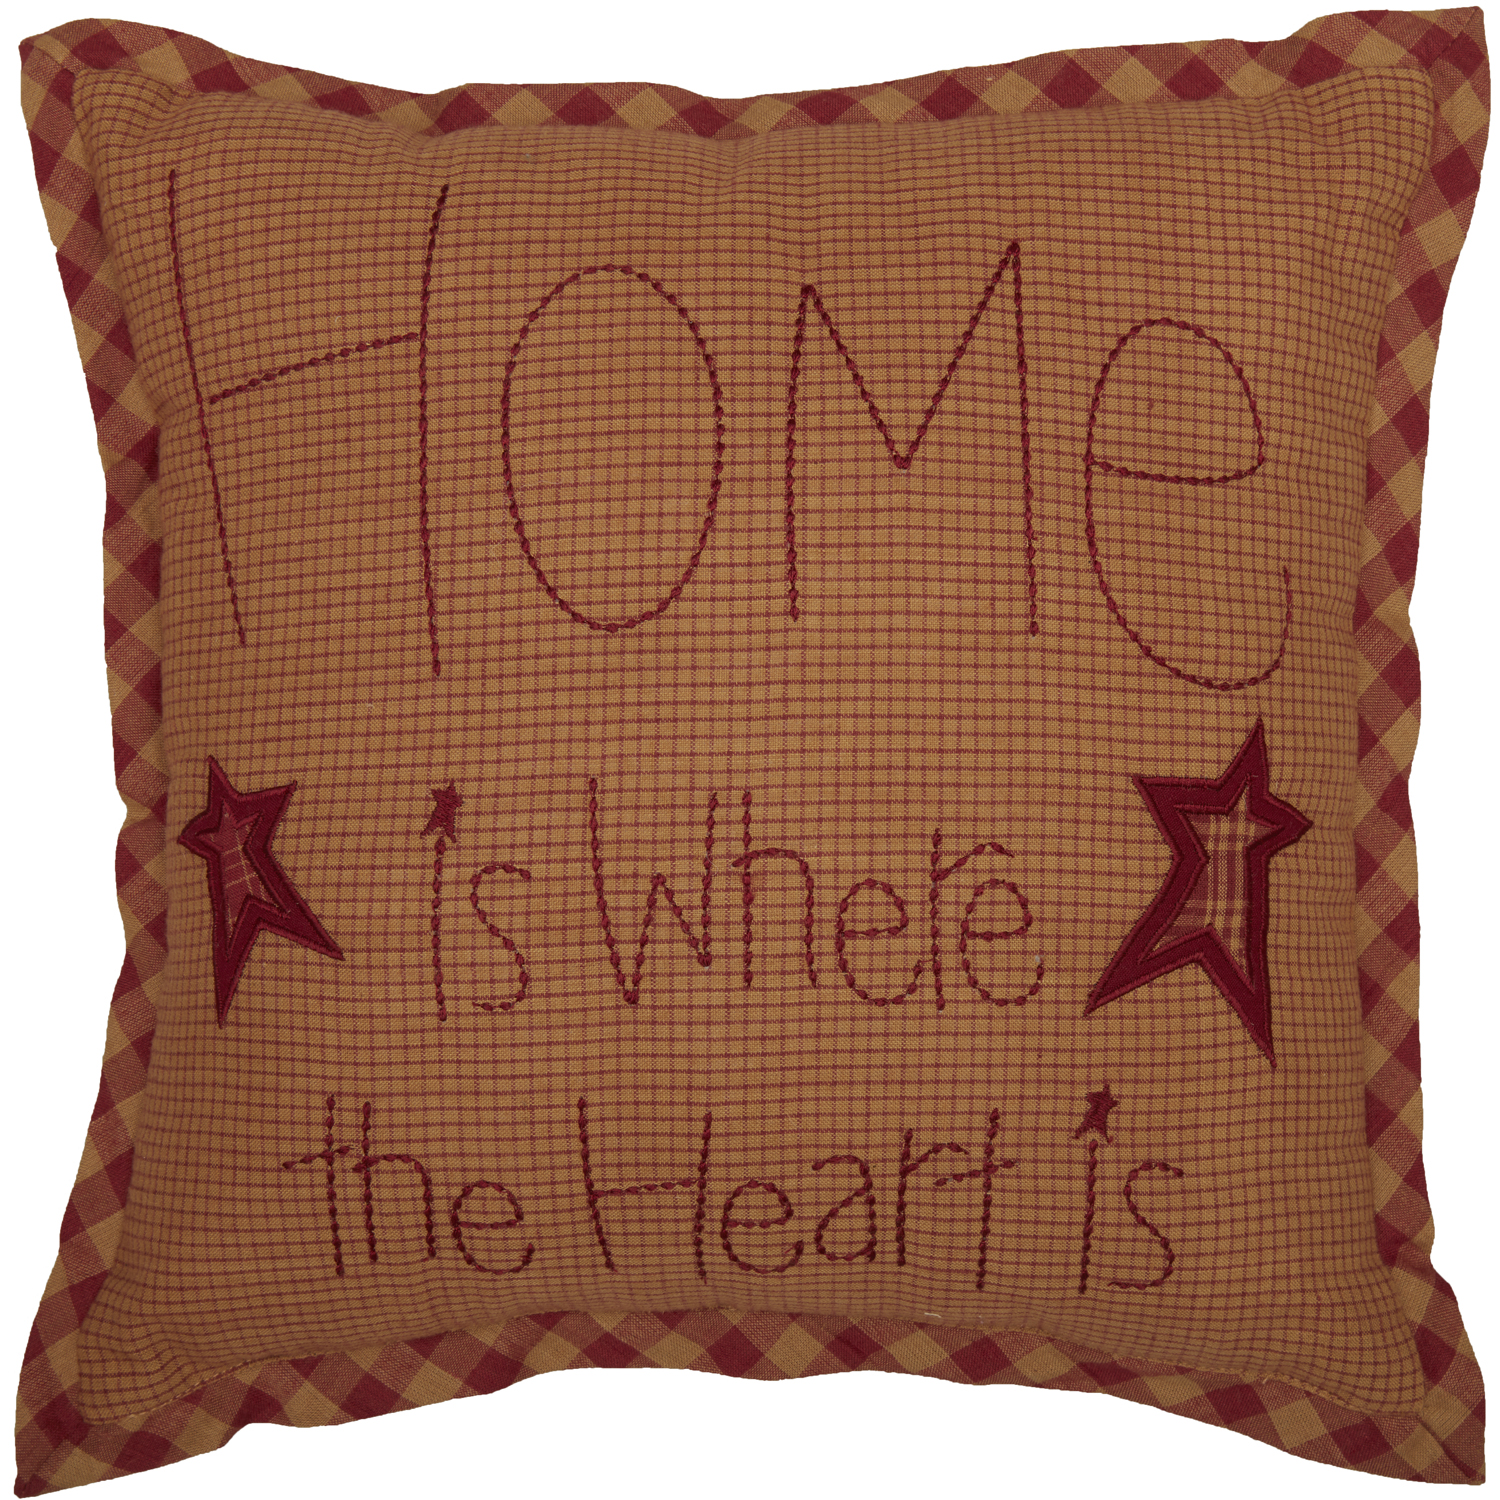 Ninepatch Star Home Pillow 12x12